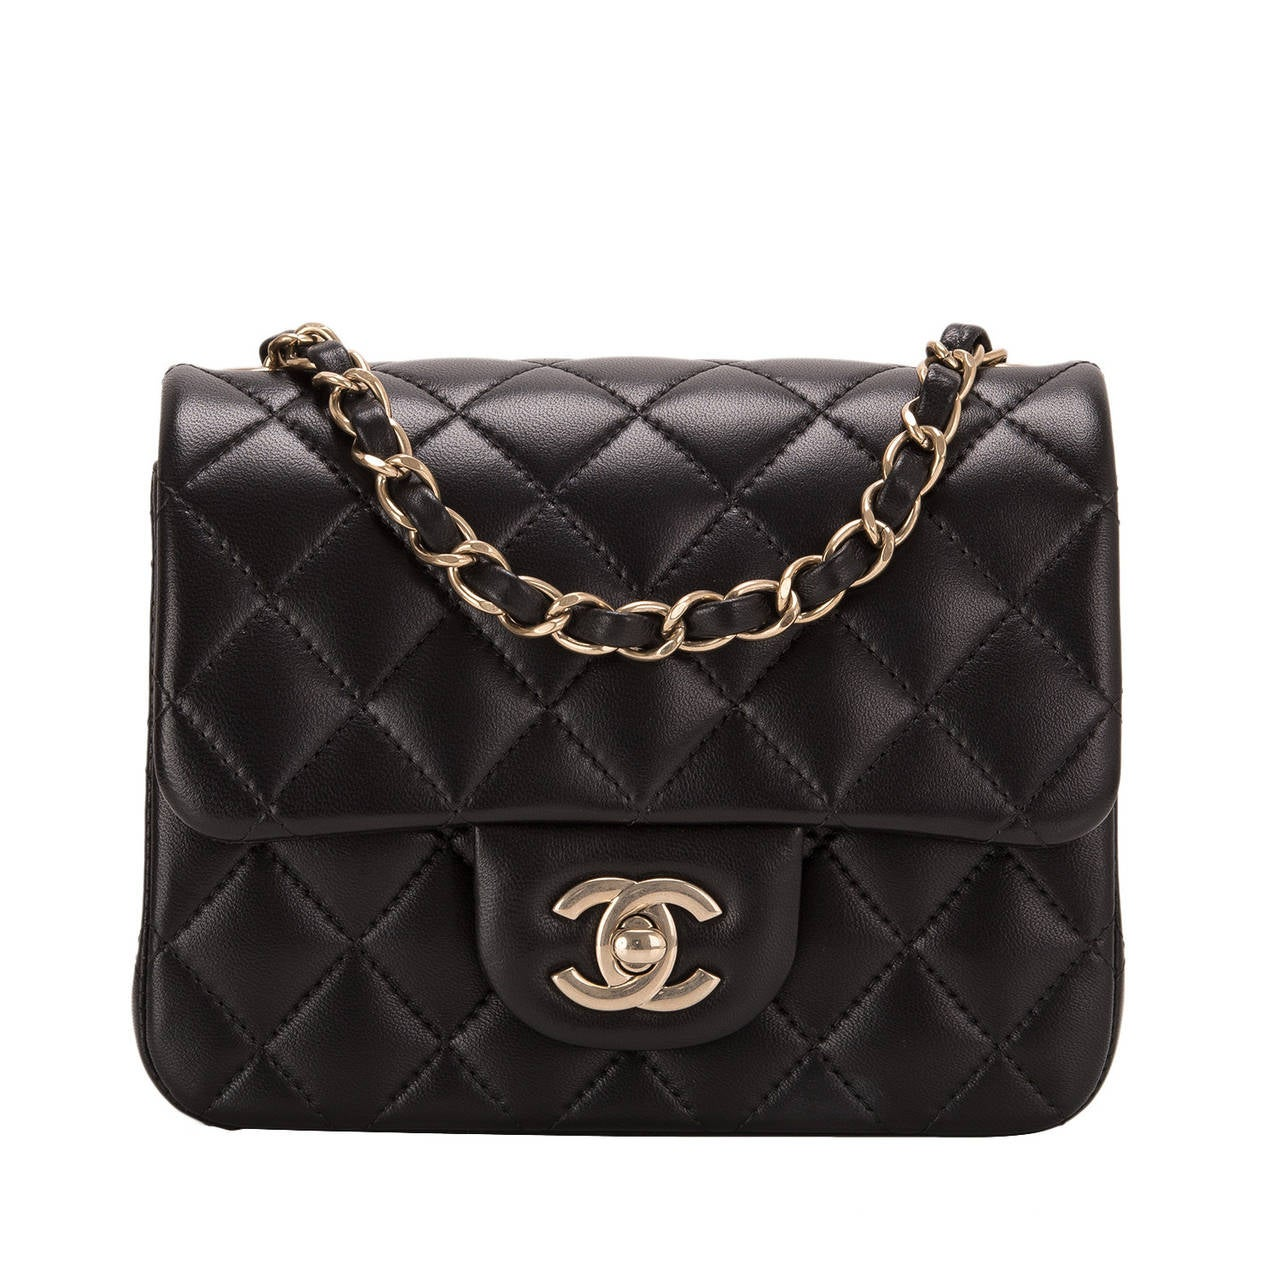 Chanel Black Quilted Lambskin Square Mini Classic Flap Bag